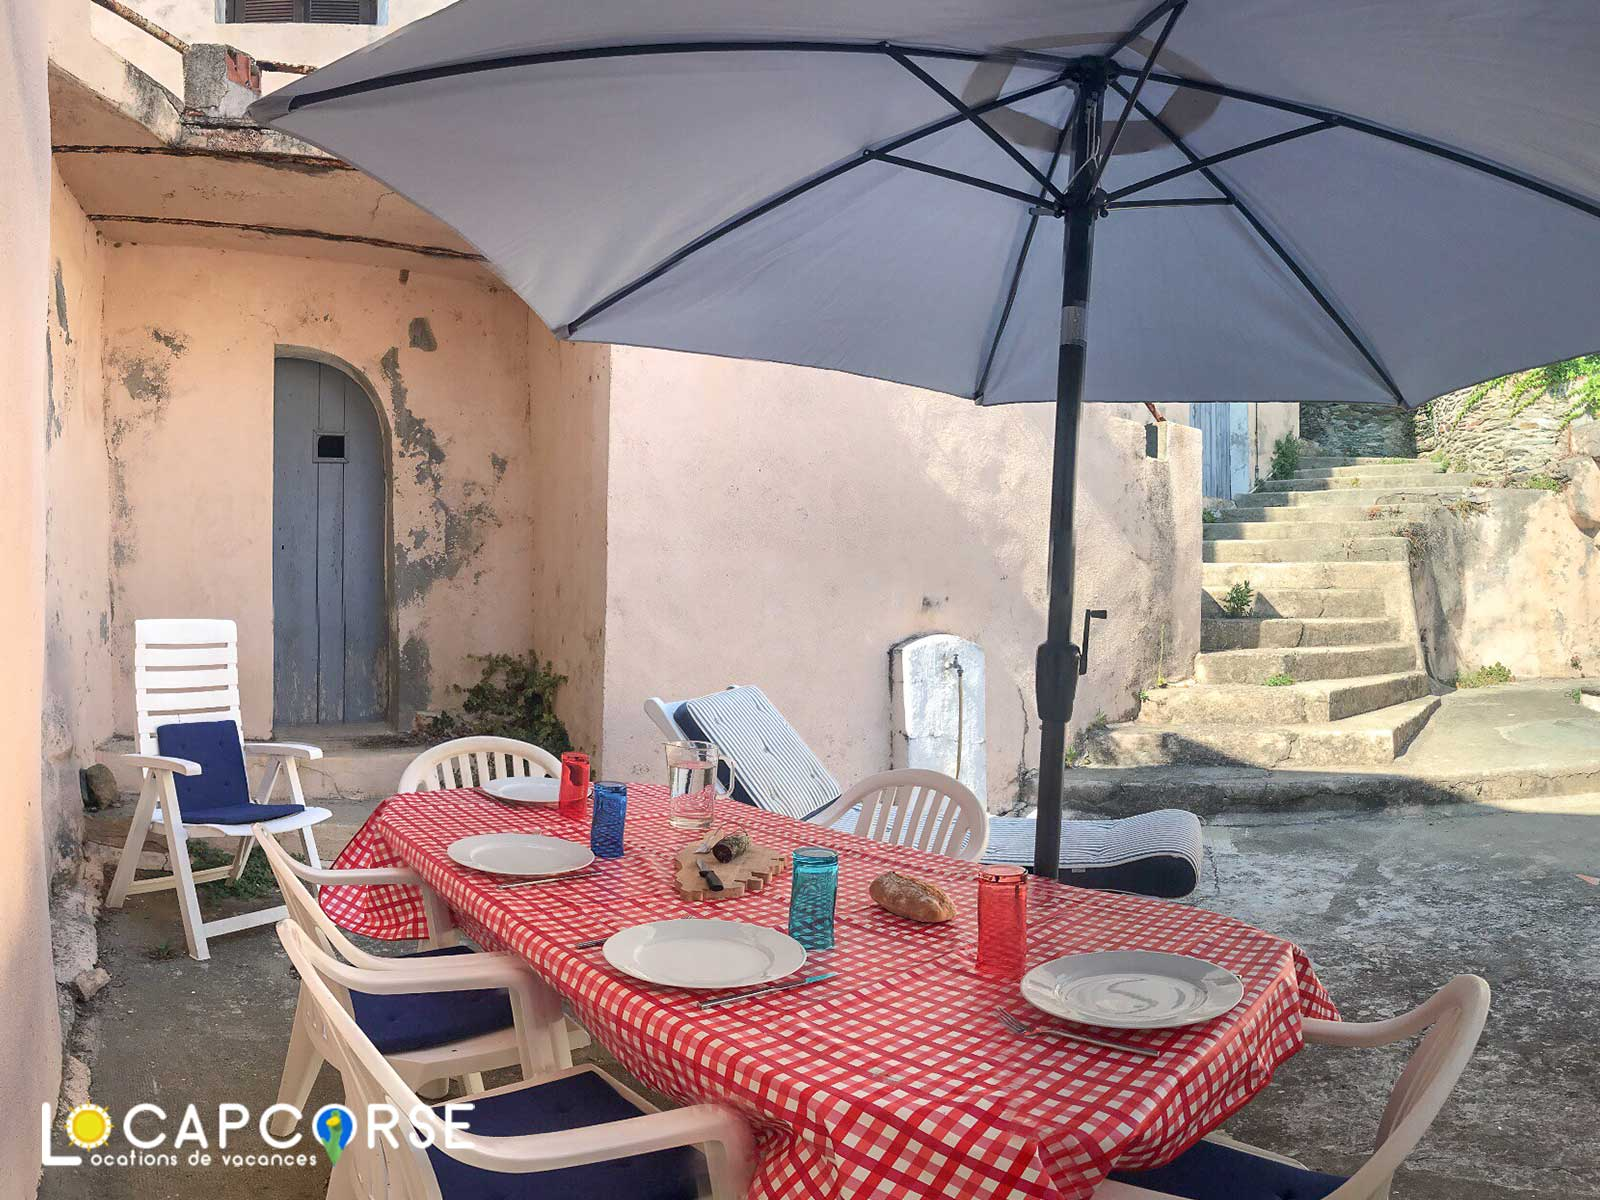 Locations Cap Corse - Holiday rental Barrettali in Cap Corse for 3/4 persons with terrace